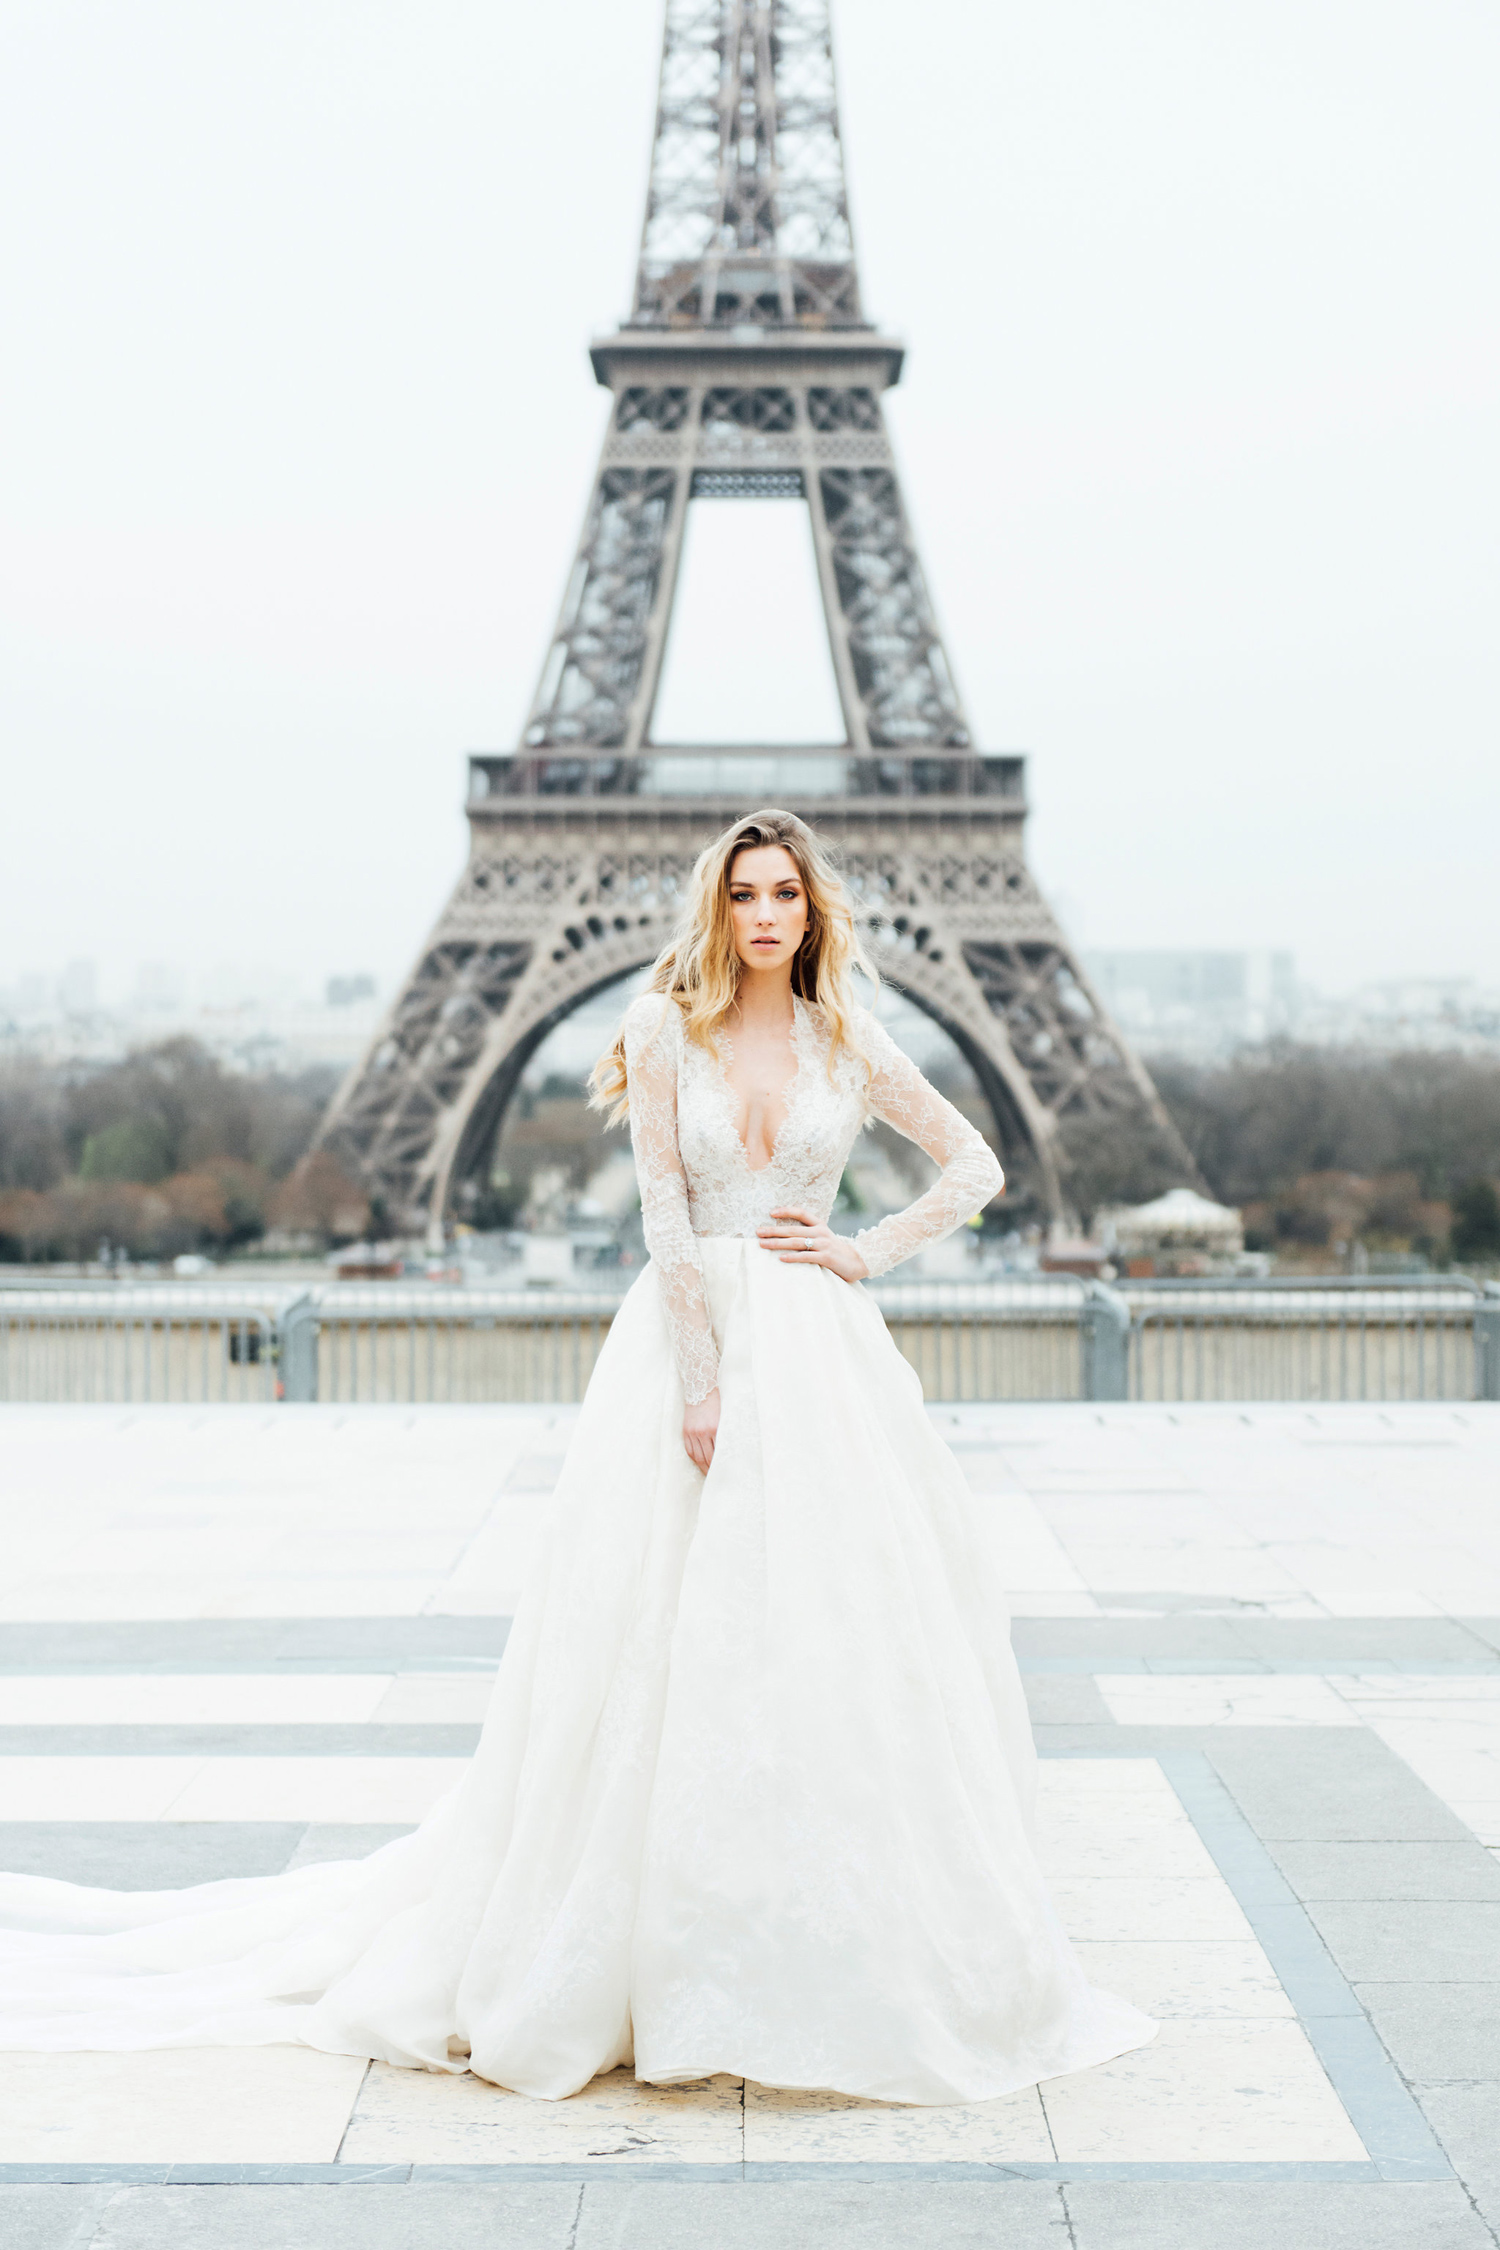 katie mitchell monique lhuillier bridal paris france wedding photographer_01.jpg